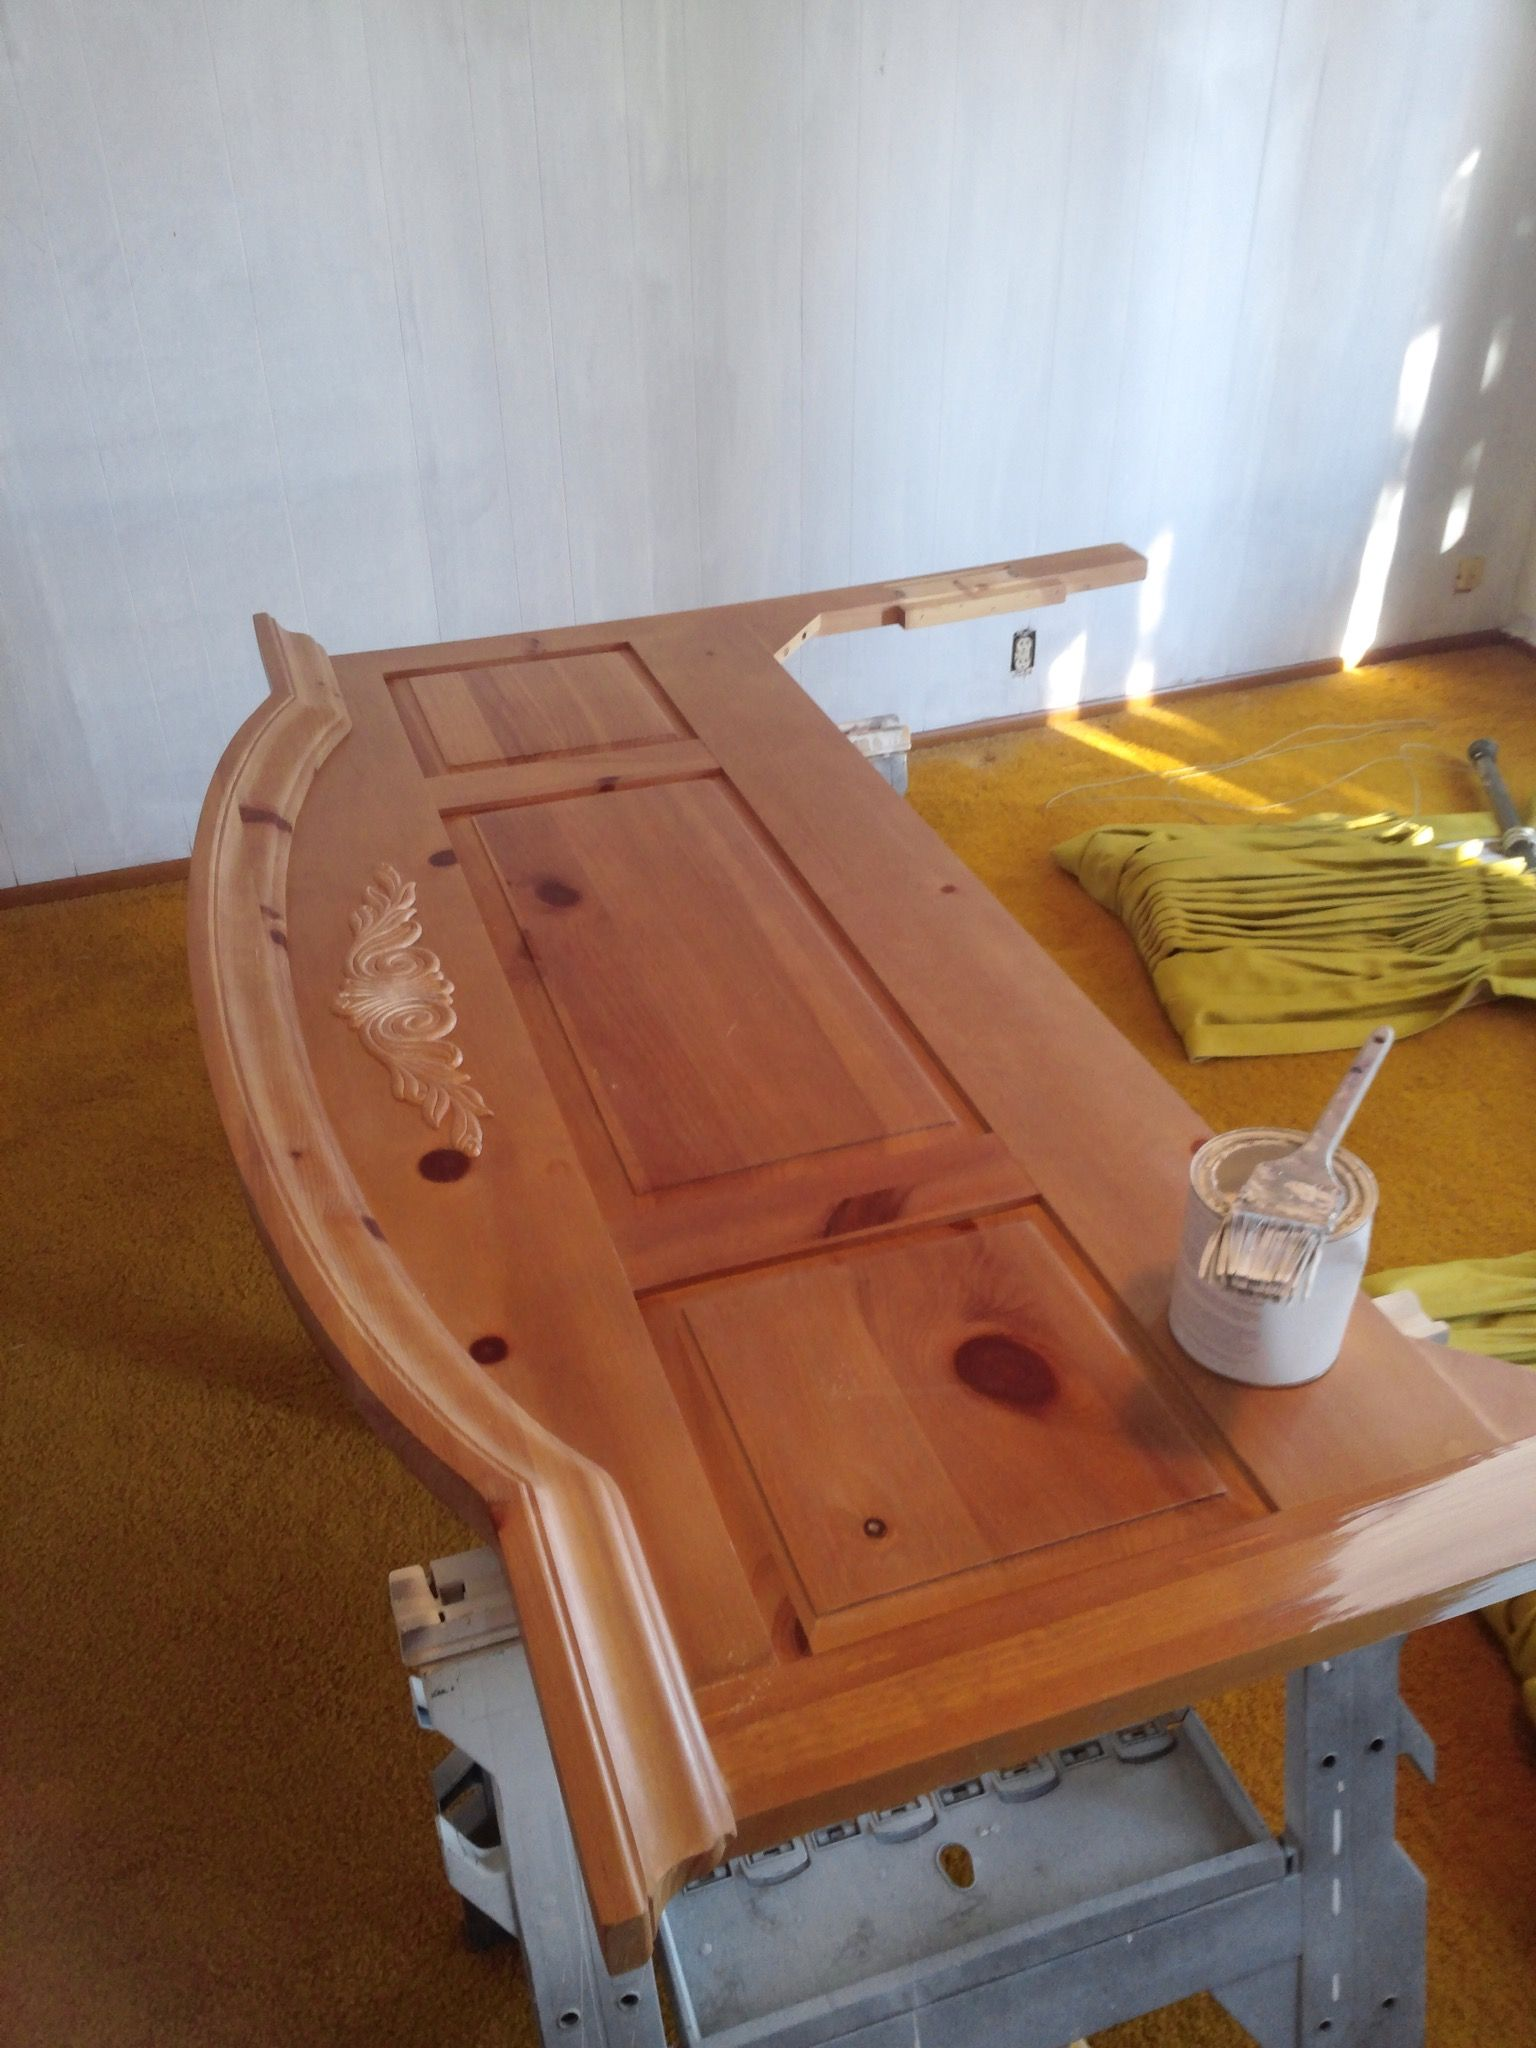 Diary of a Thrift Store Bed (Or, How to paint a piece of furniture) - The Treasured Home